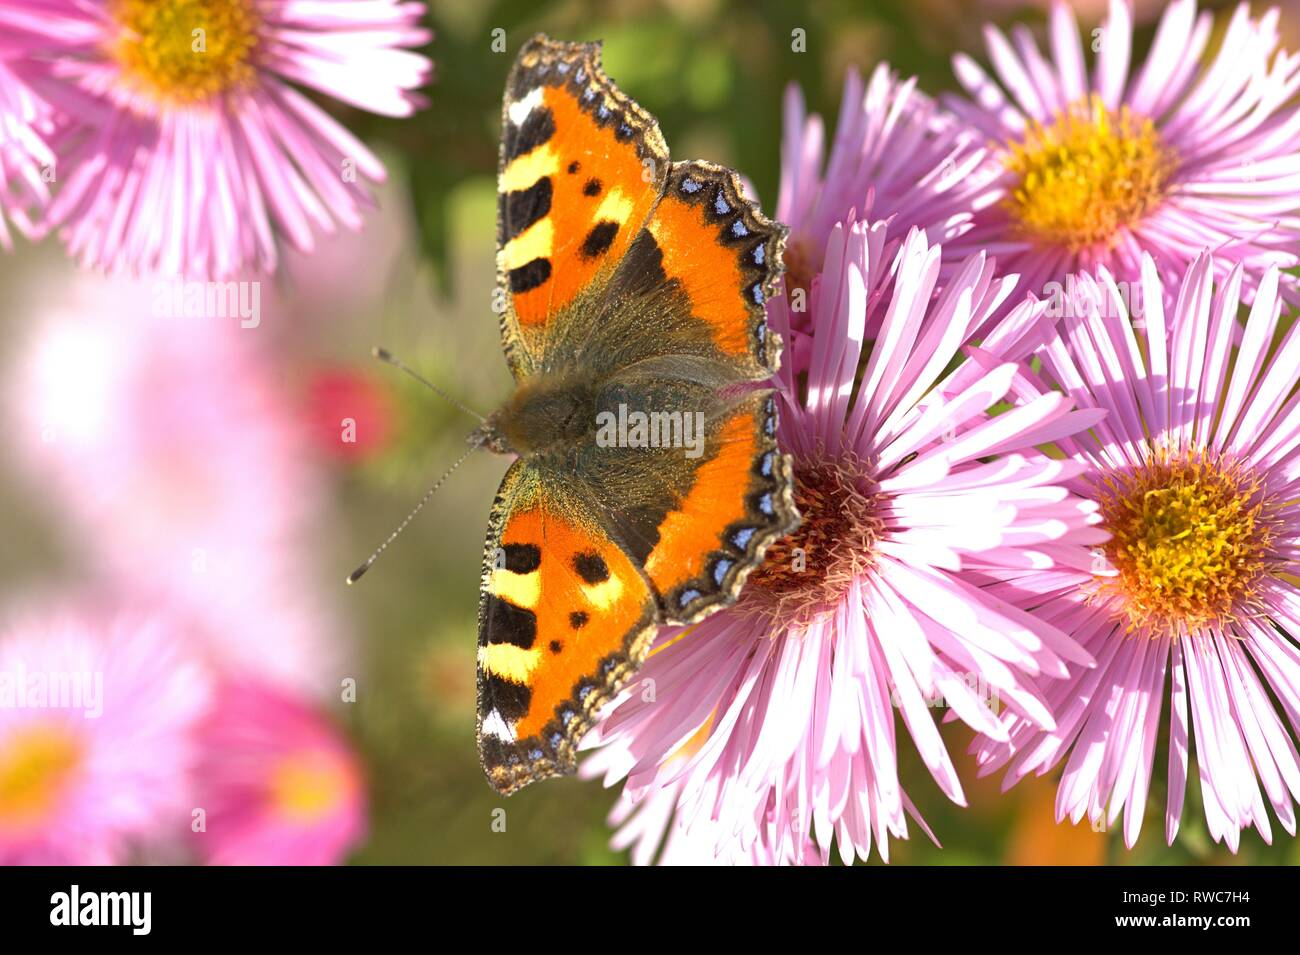 Schleswig, Deutschland. 11th Oct, 2018. A small fox (Aglais urticae, syn .: Nymphalis urticae), a butterfly of the family Nymphalidae in the best autumn weather on the blood of an aster in Furstengarten in Schleswig. Class: Insects (Insecta), Order: Butterflies (Lepidoptera), Family: Nymphalidae, Subfamily: Spotted Butterfly (Nymphalinae), Genus: Aglais, Species: Small Fox   usage worldwide Credit: dpa/Alamy Live News Stock Photo